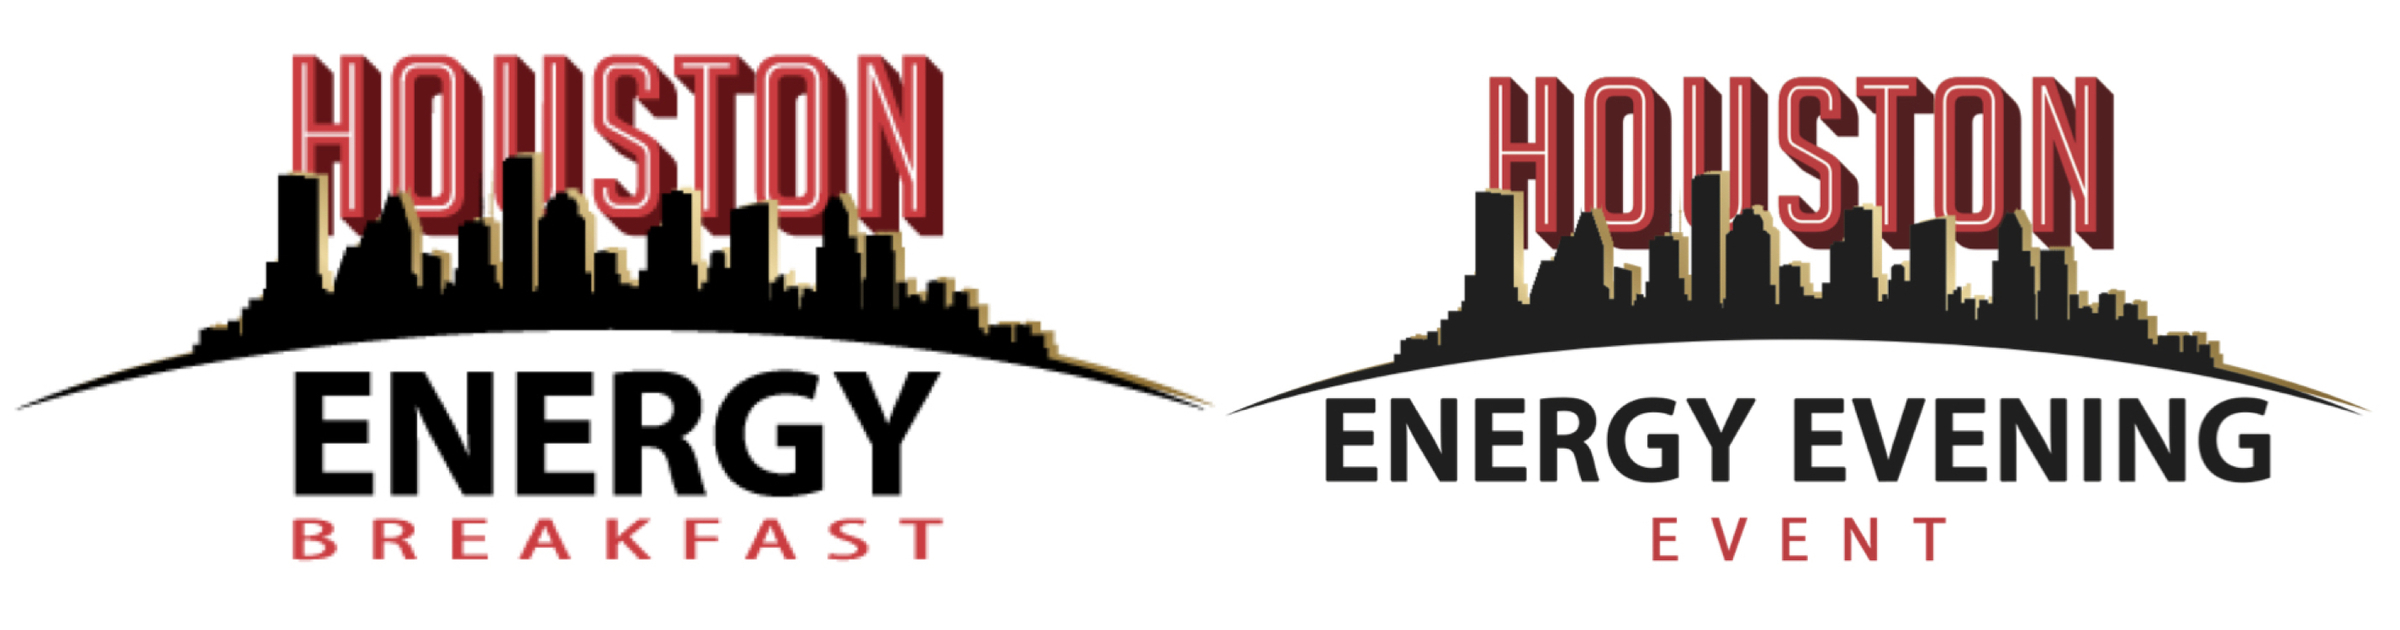 Houston Energy Breakfast & Energy Evening Event Logo